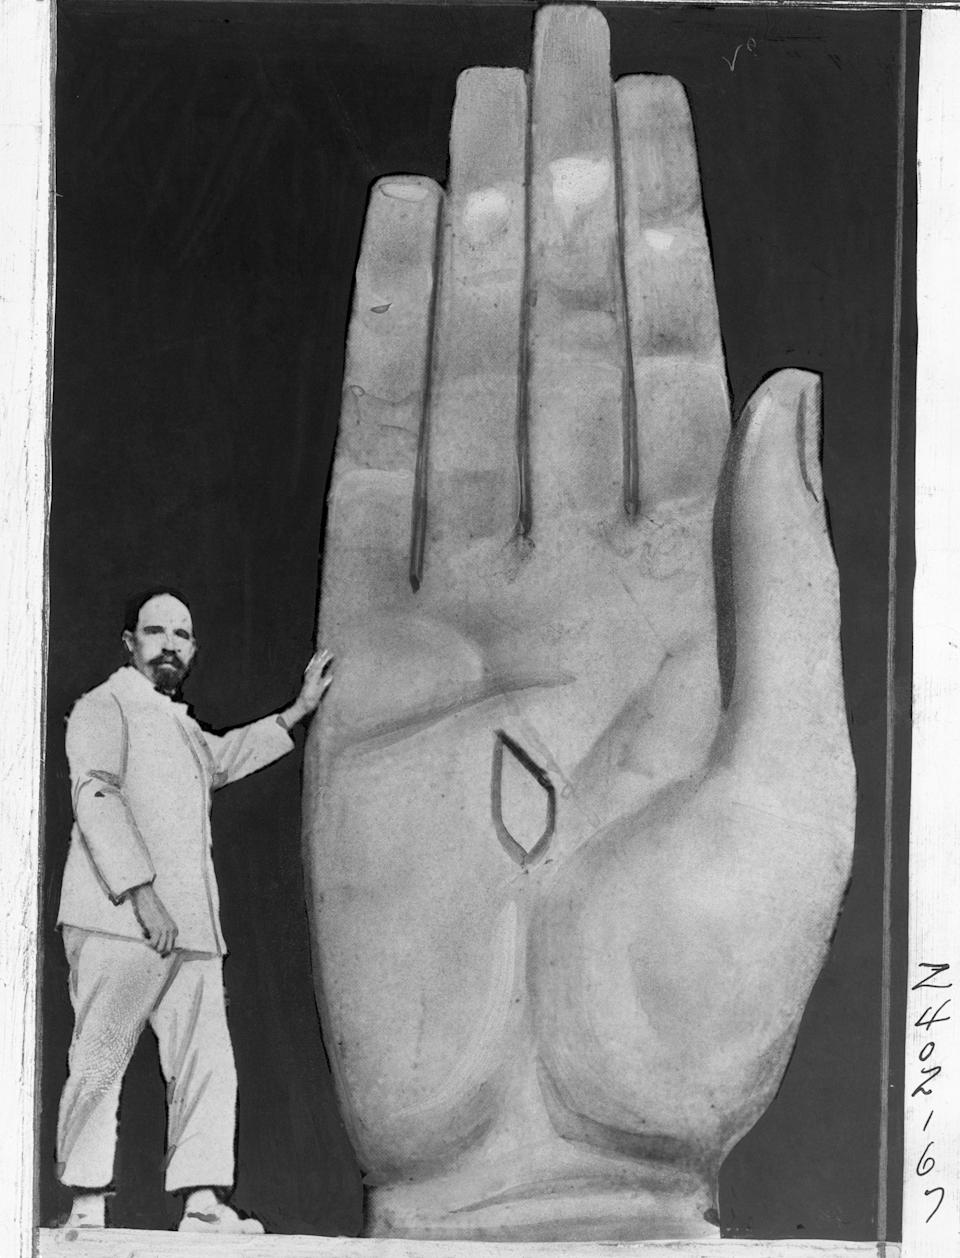 Polish sculptor, shown at work on the hand of the giant statue of Christ which he is completing and which will be placed in Rio De Janeiro Bay, South America.